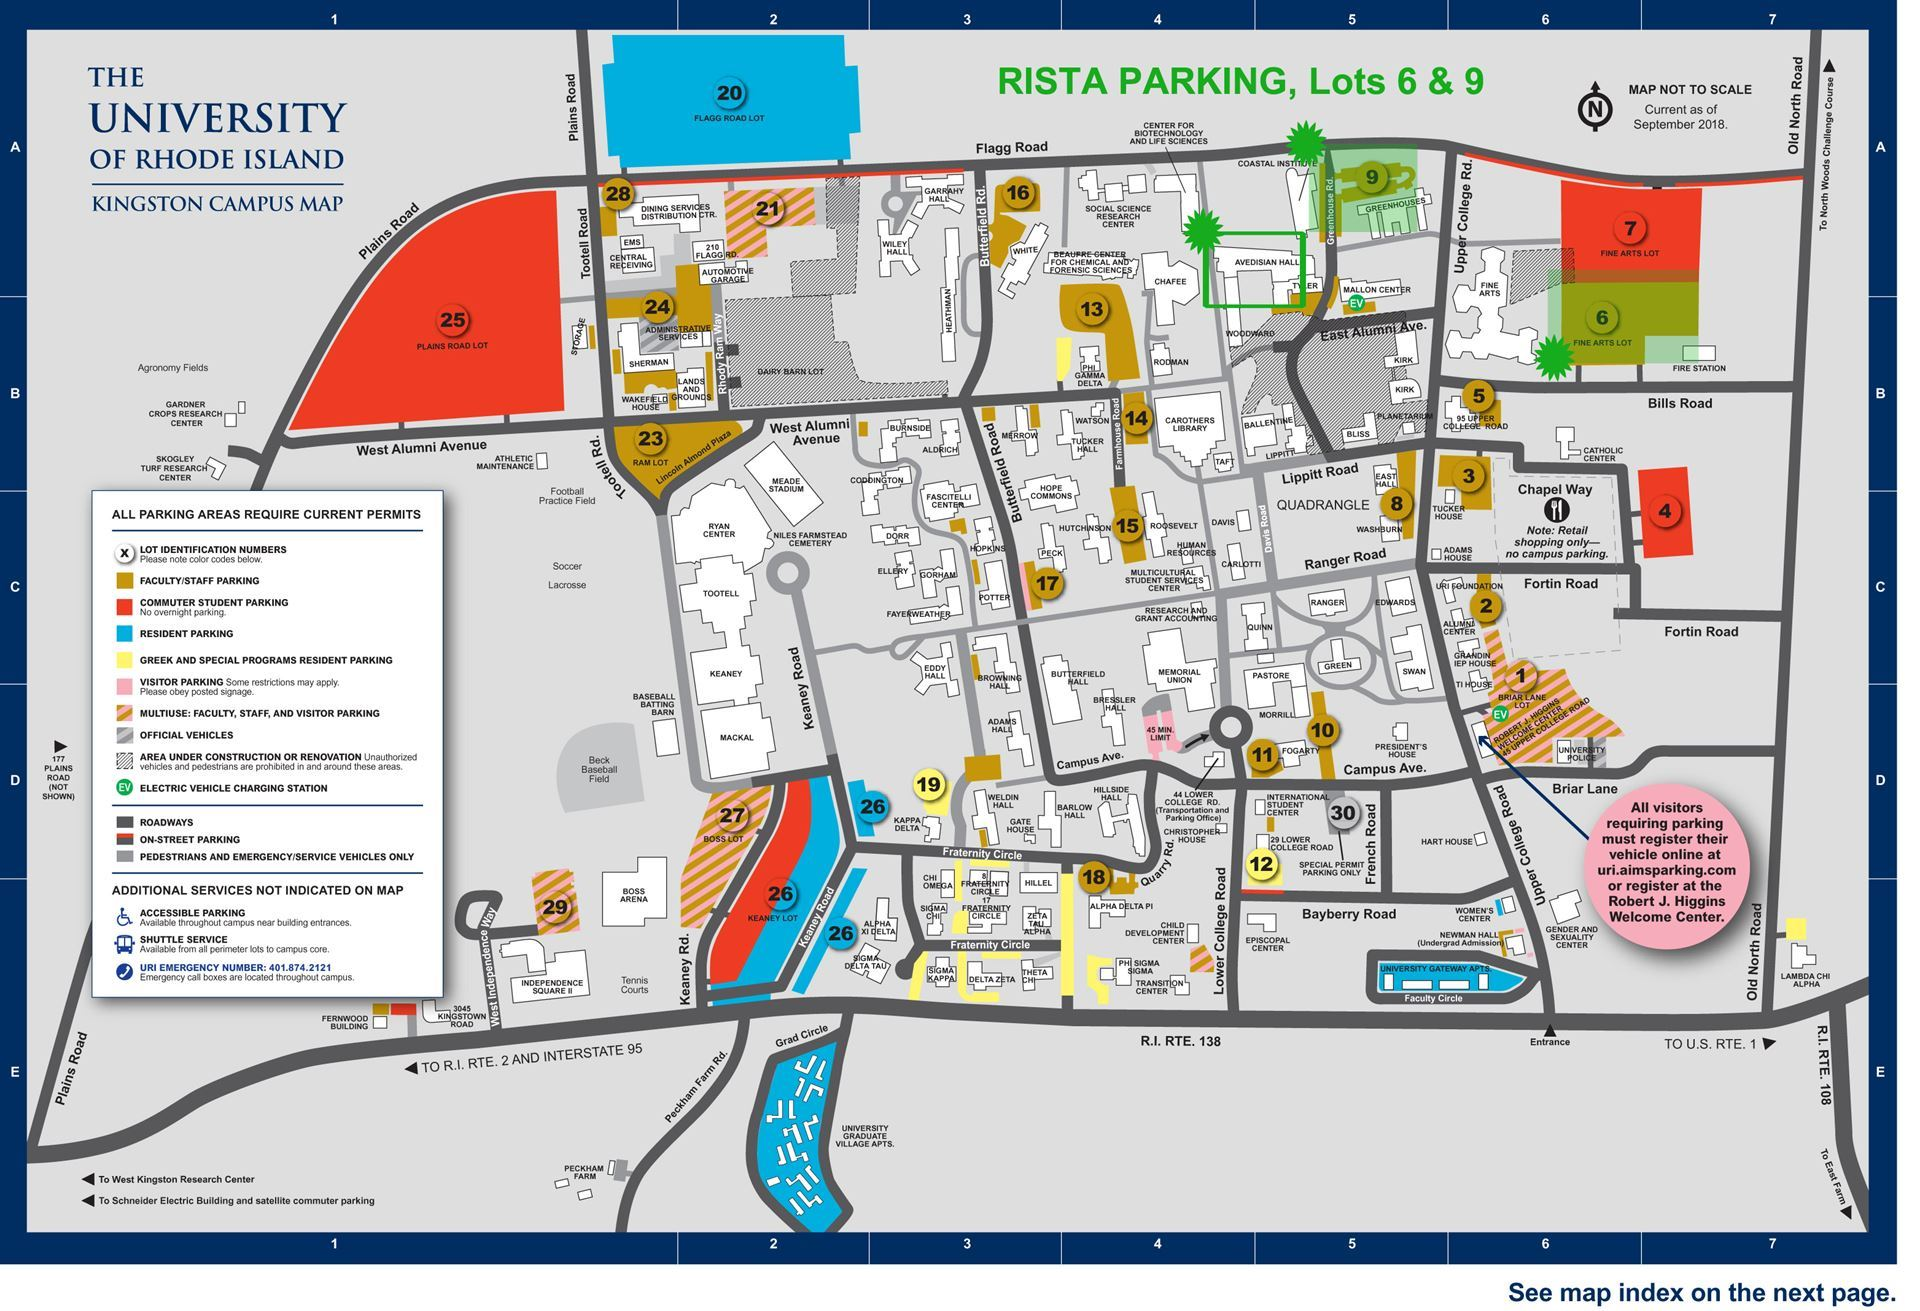 uri map of campus Uri Kingston Campus Map My Blog uri map of campus